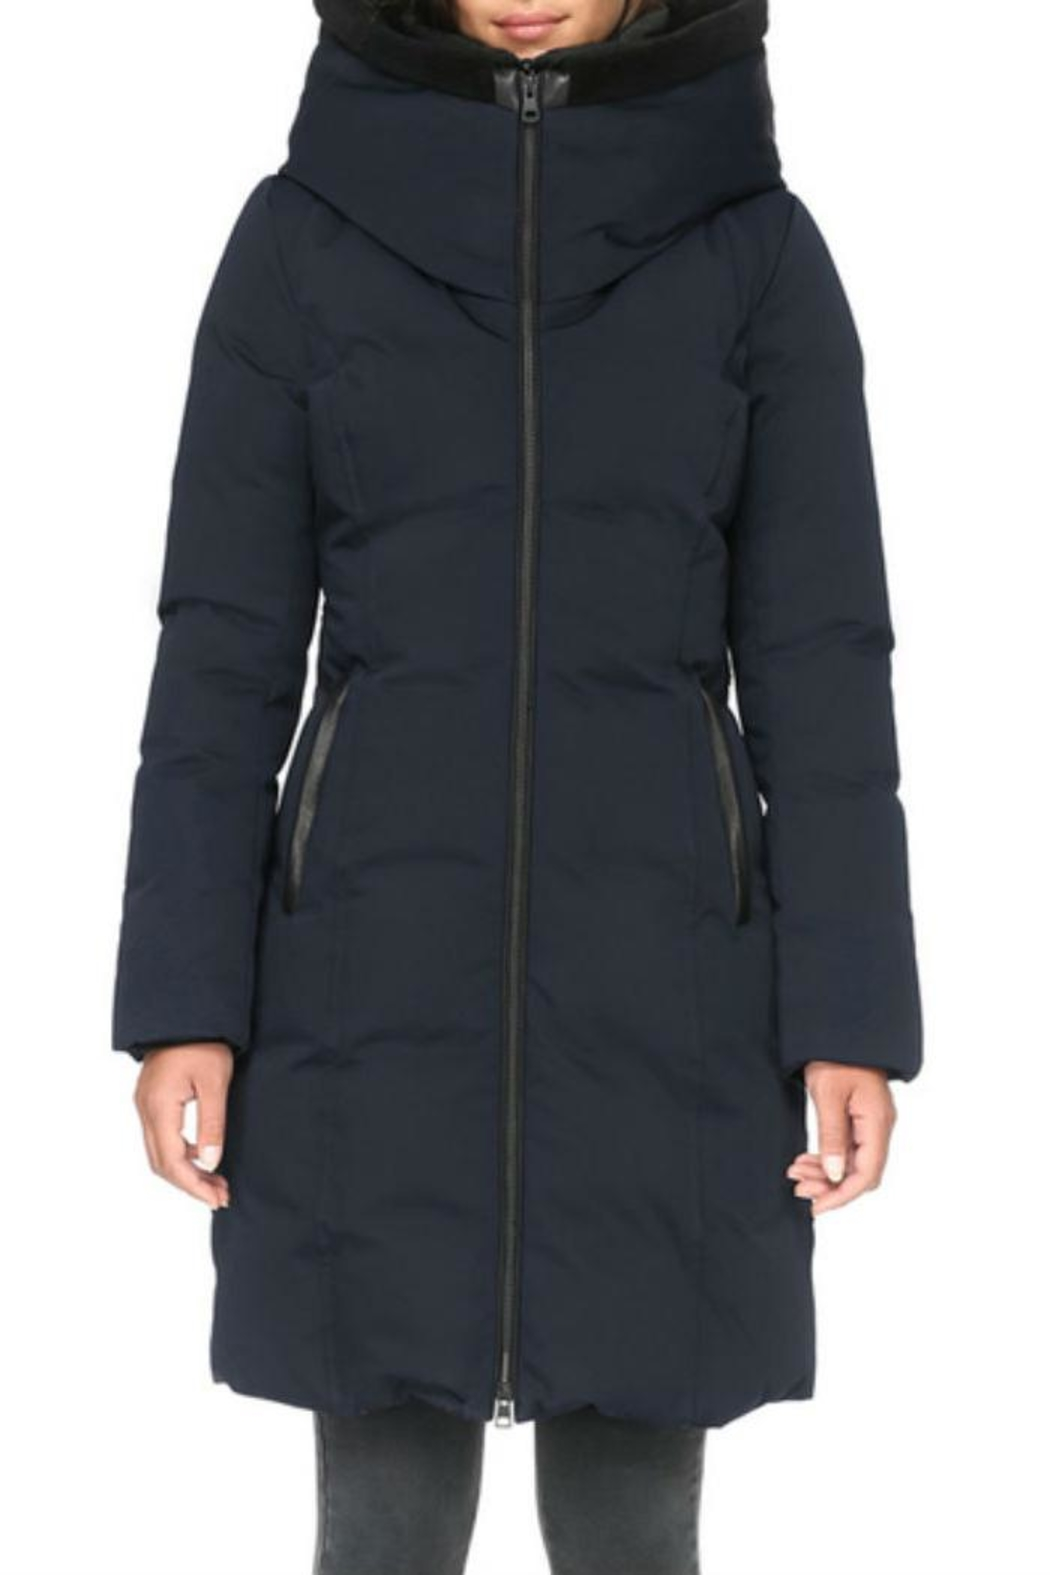 Soia & Kyo Katlin Down Coat - Main Image